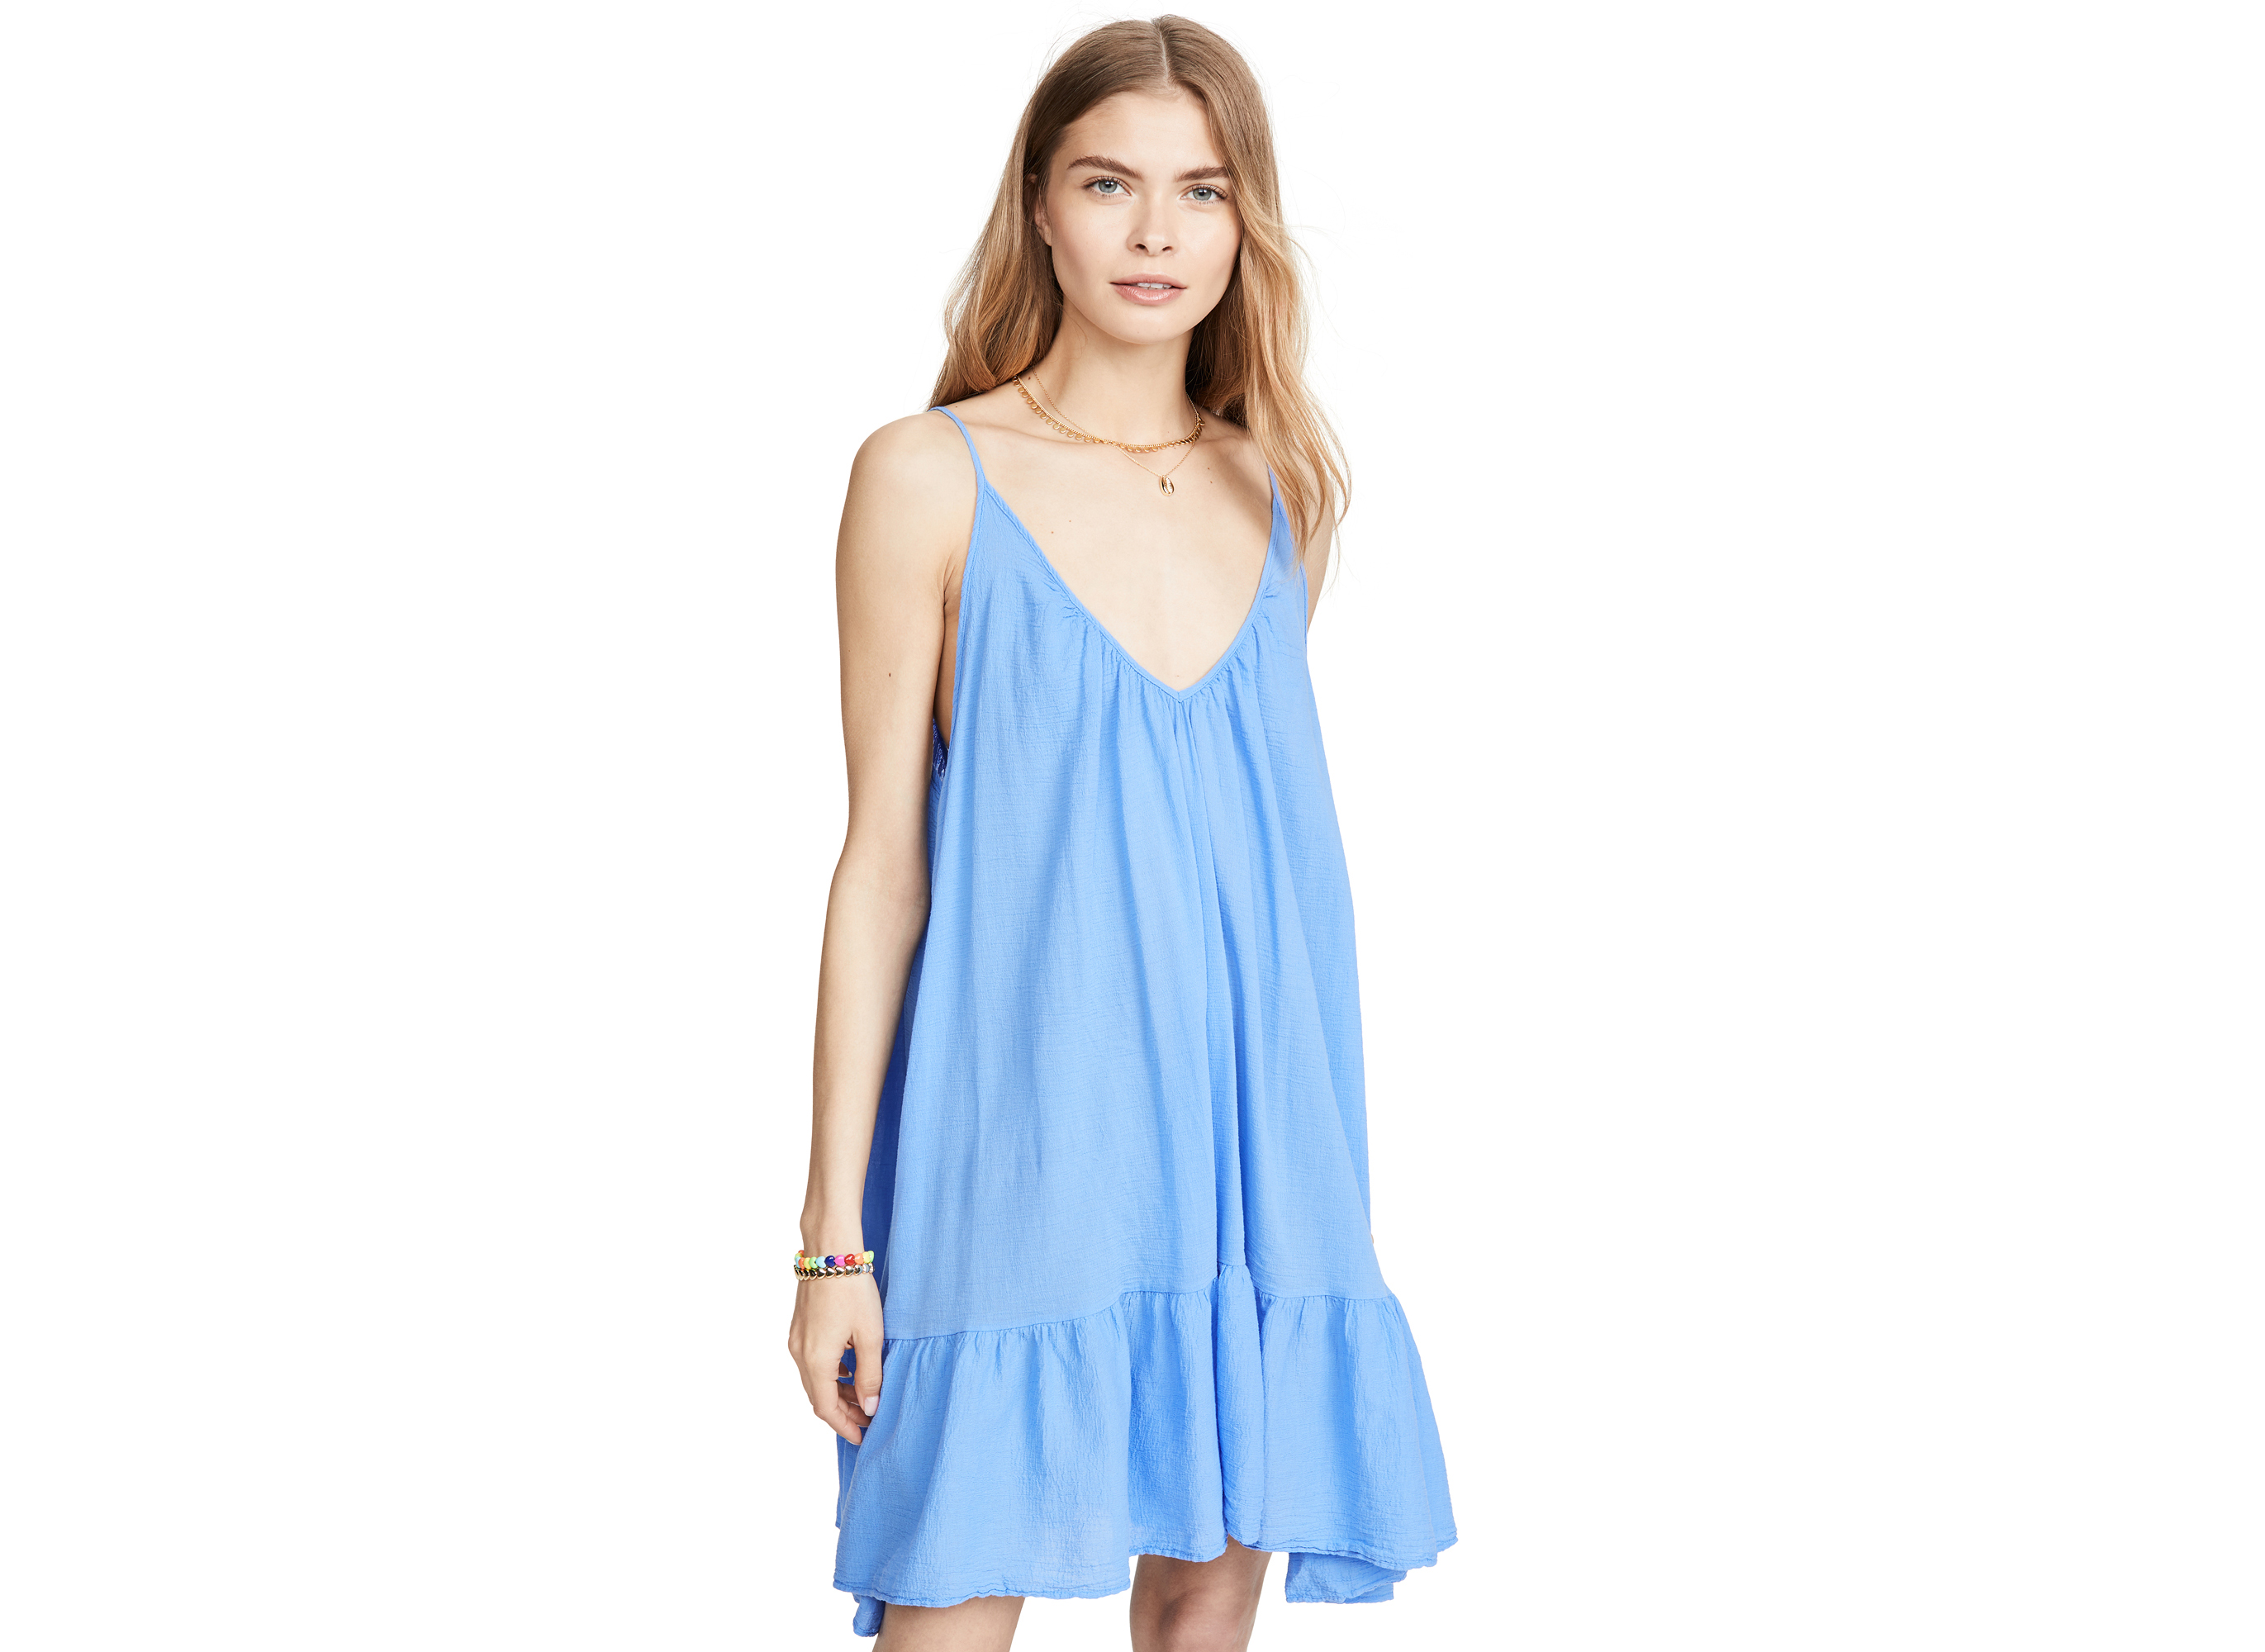 St. Tropez Mini Dress by 9seed